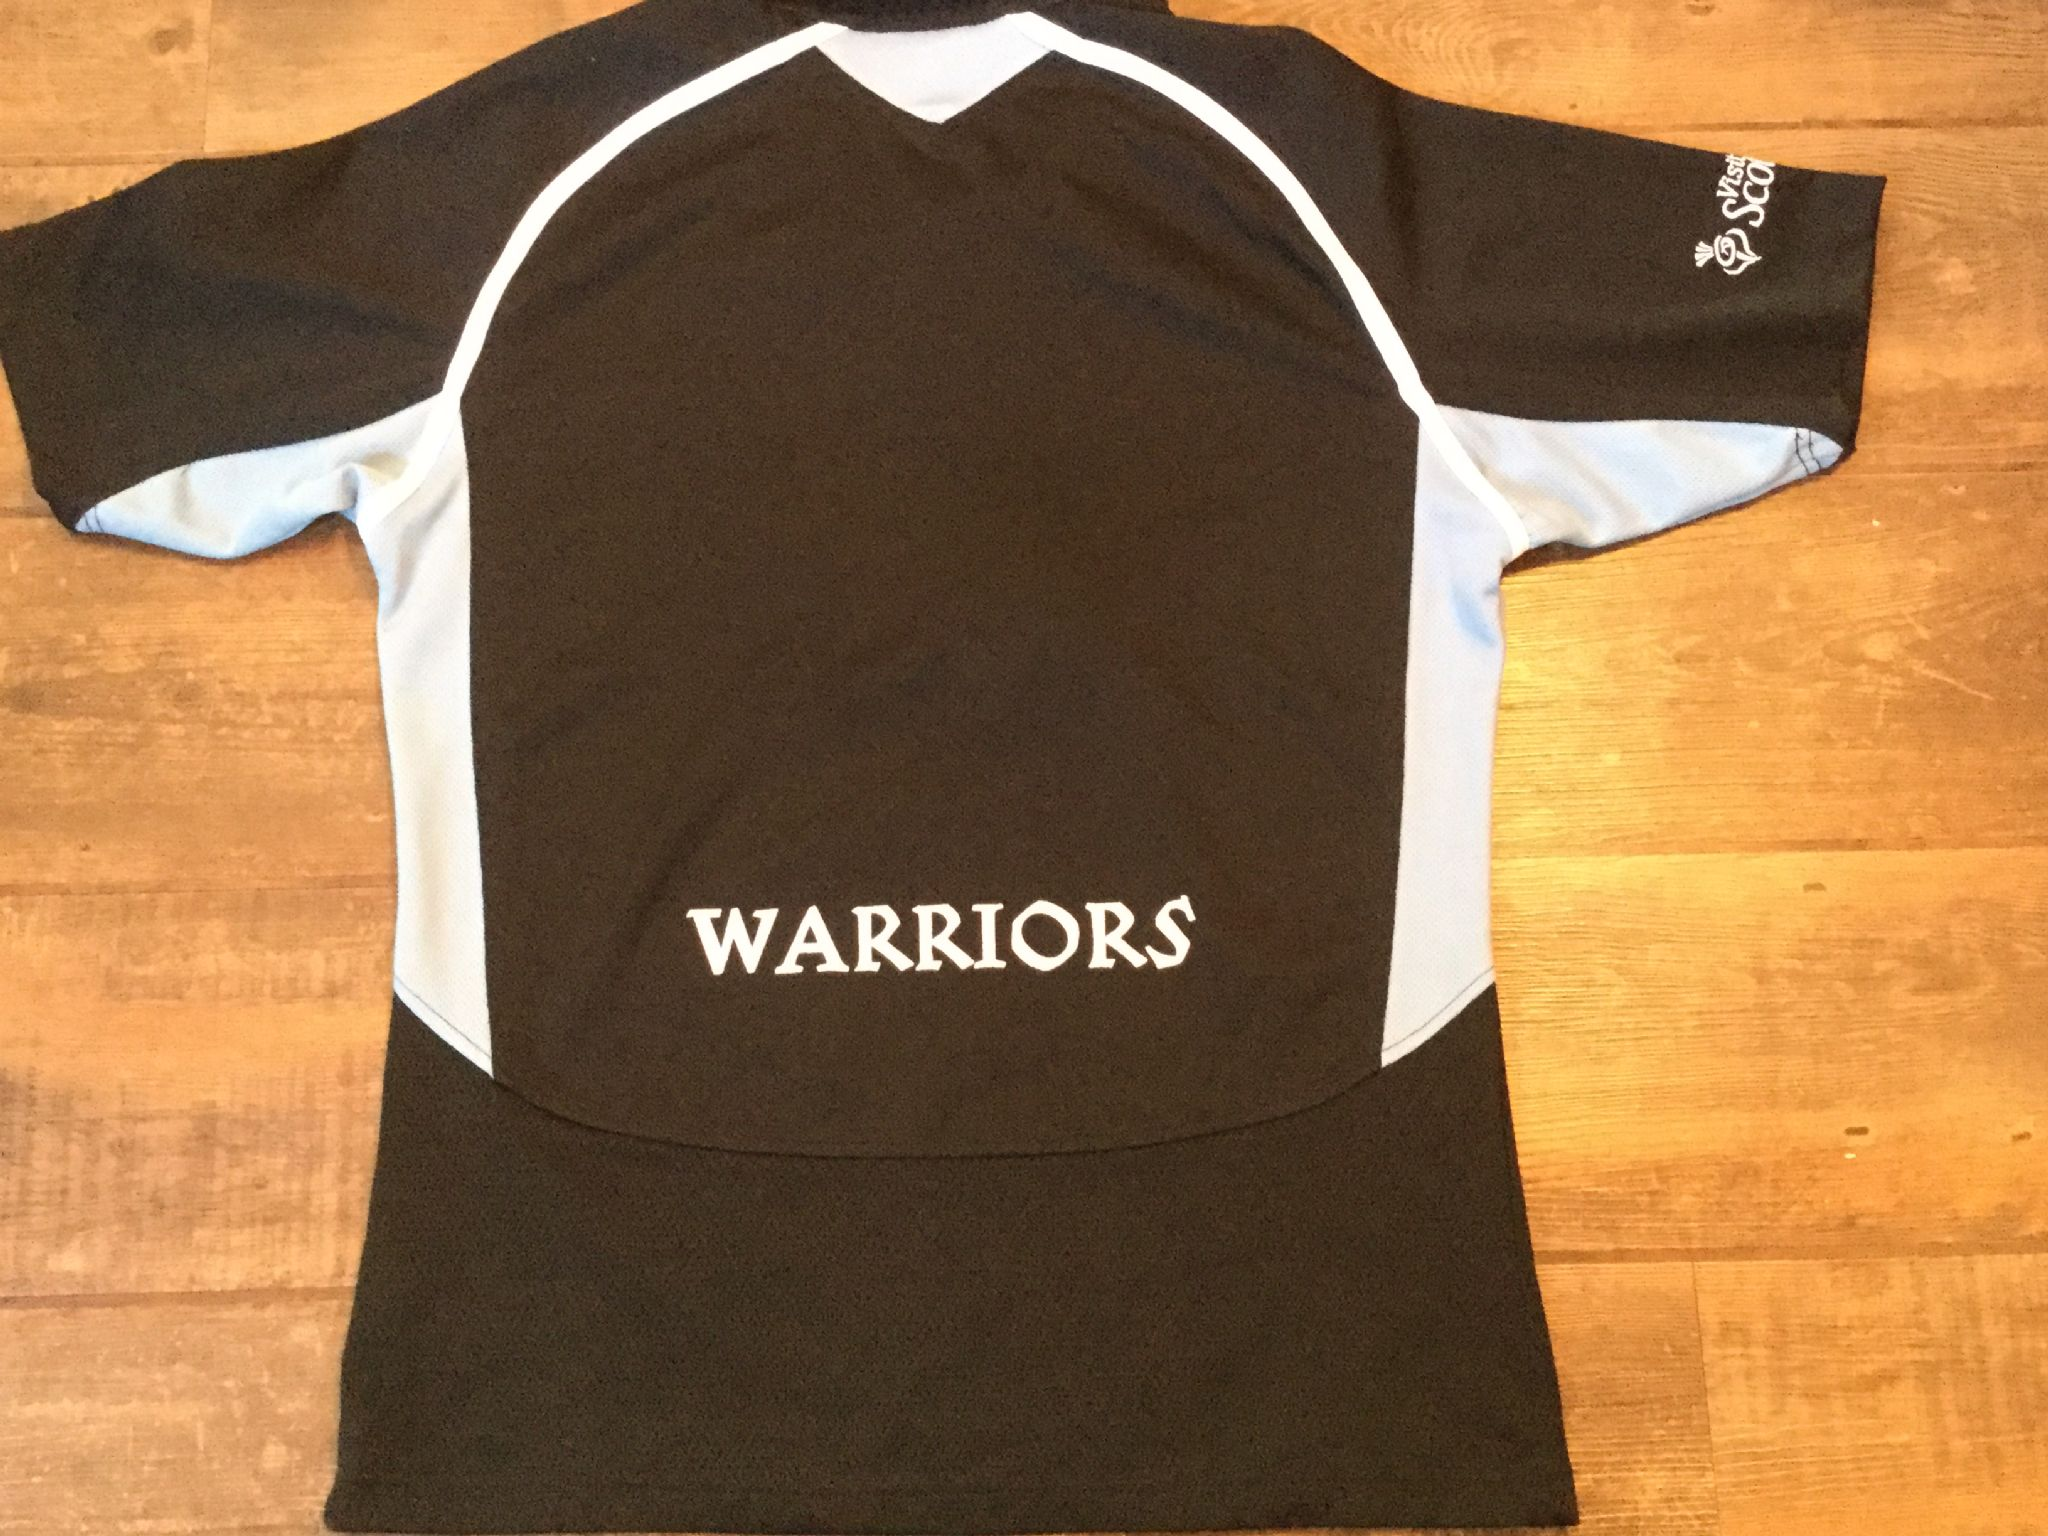 cheaper df08e 2866c Classic Rugby Shirts | 2007 Glasgow Warriors Vintage Old Jerseys